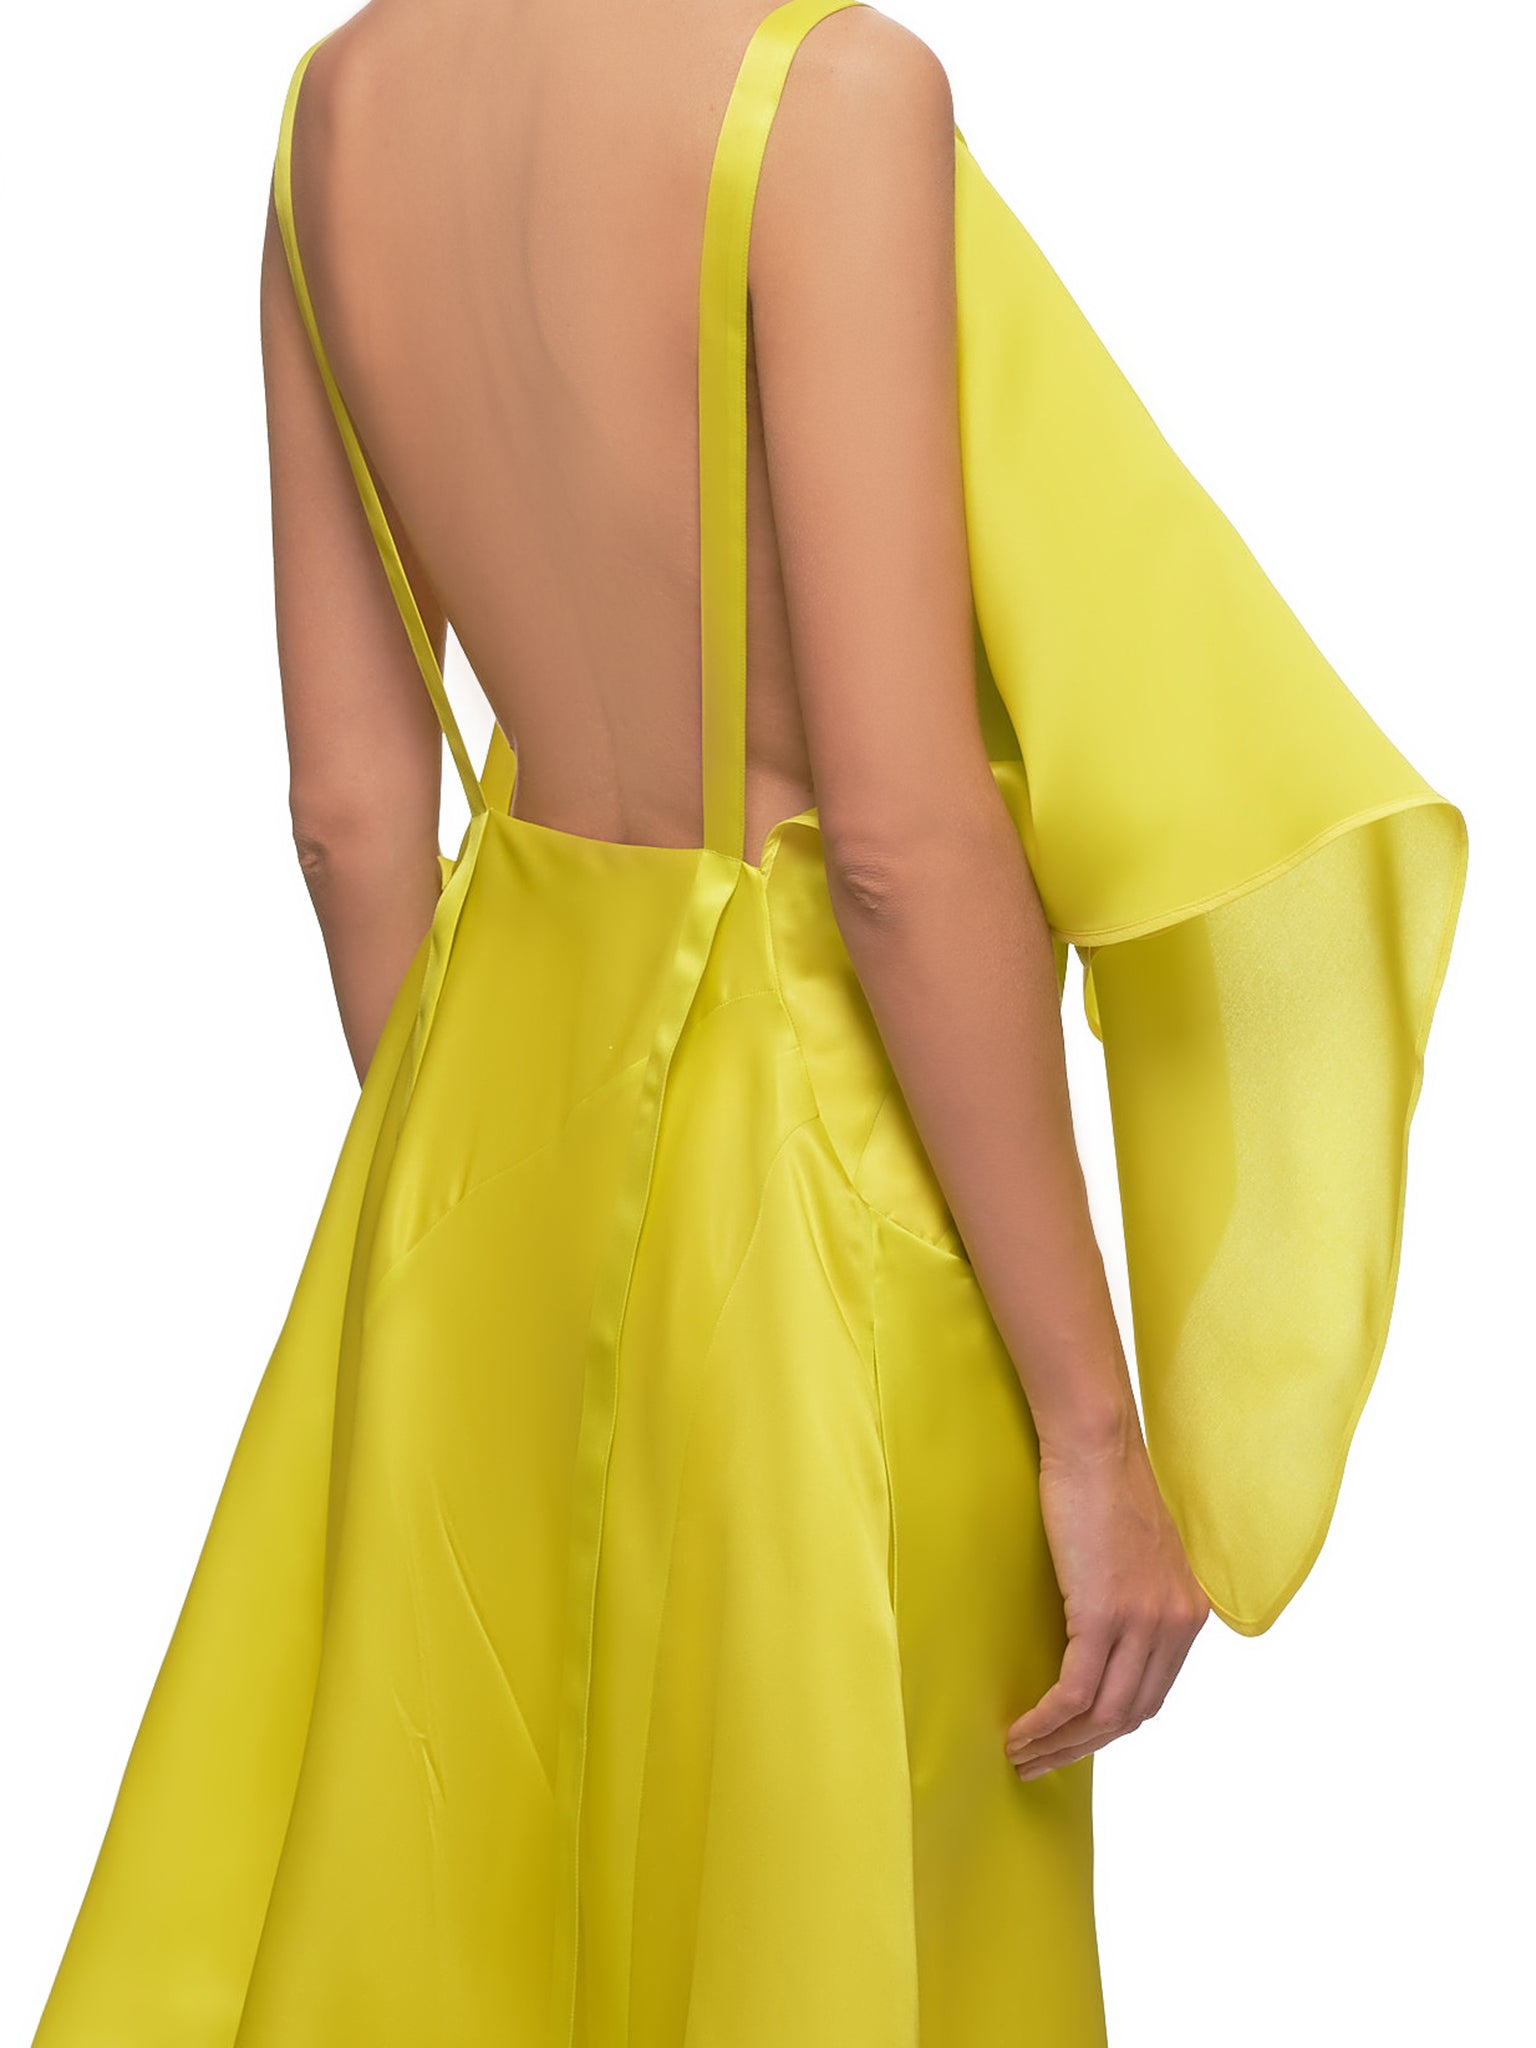 Nina Ricci Dress - Hlorenzo Detail 1